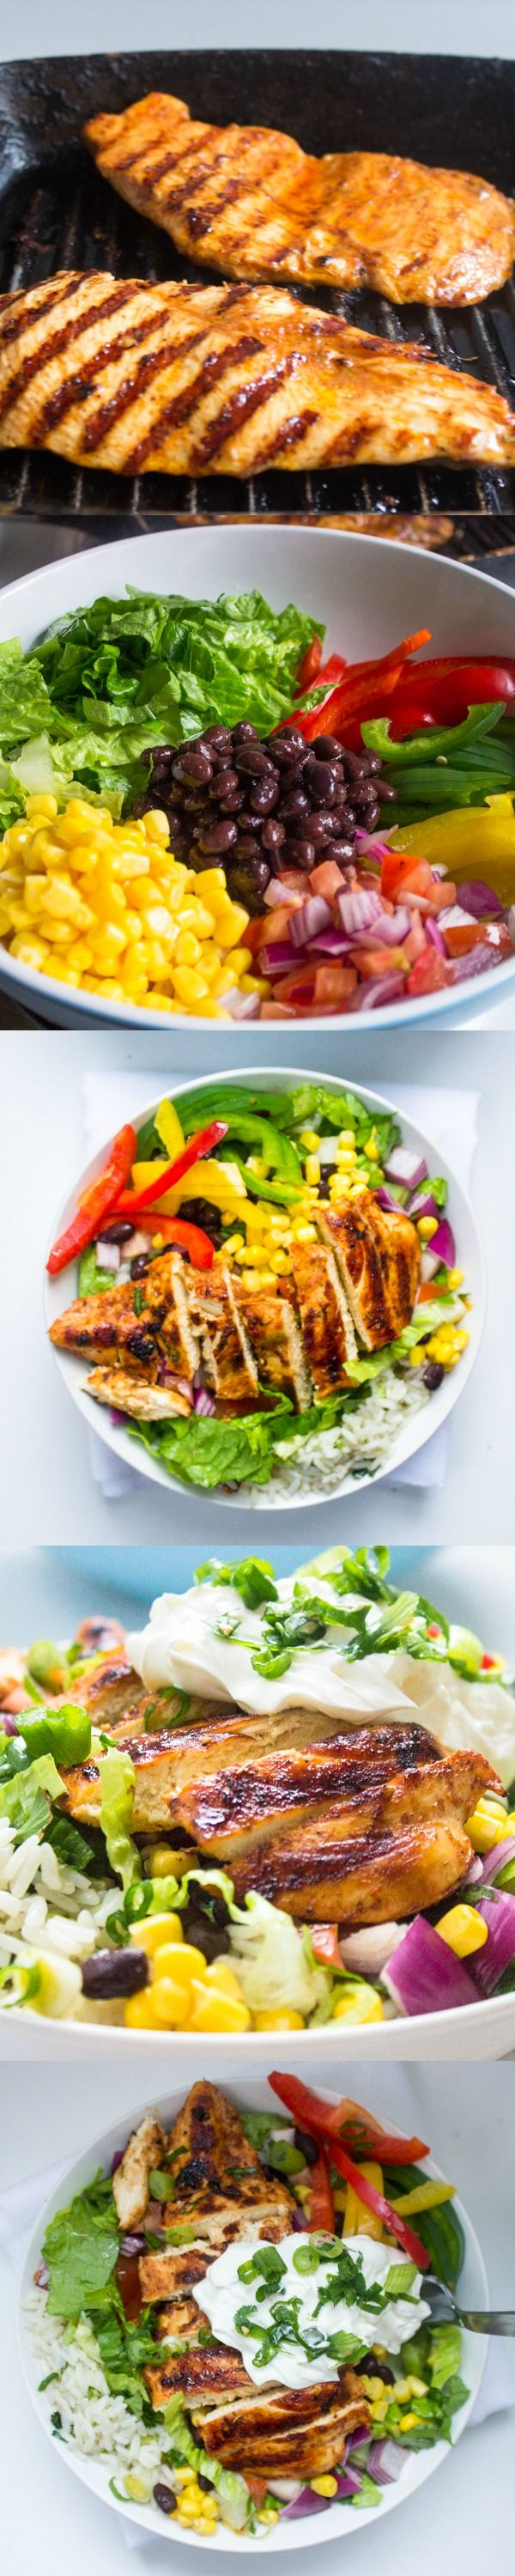 #Recipe: Chipotle's Chicken Burrito Bowl with Cilantro Lime Rice - Don't want to spend all your time in the store? Let Shelf Scouter help! www.shelfscouter.com